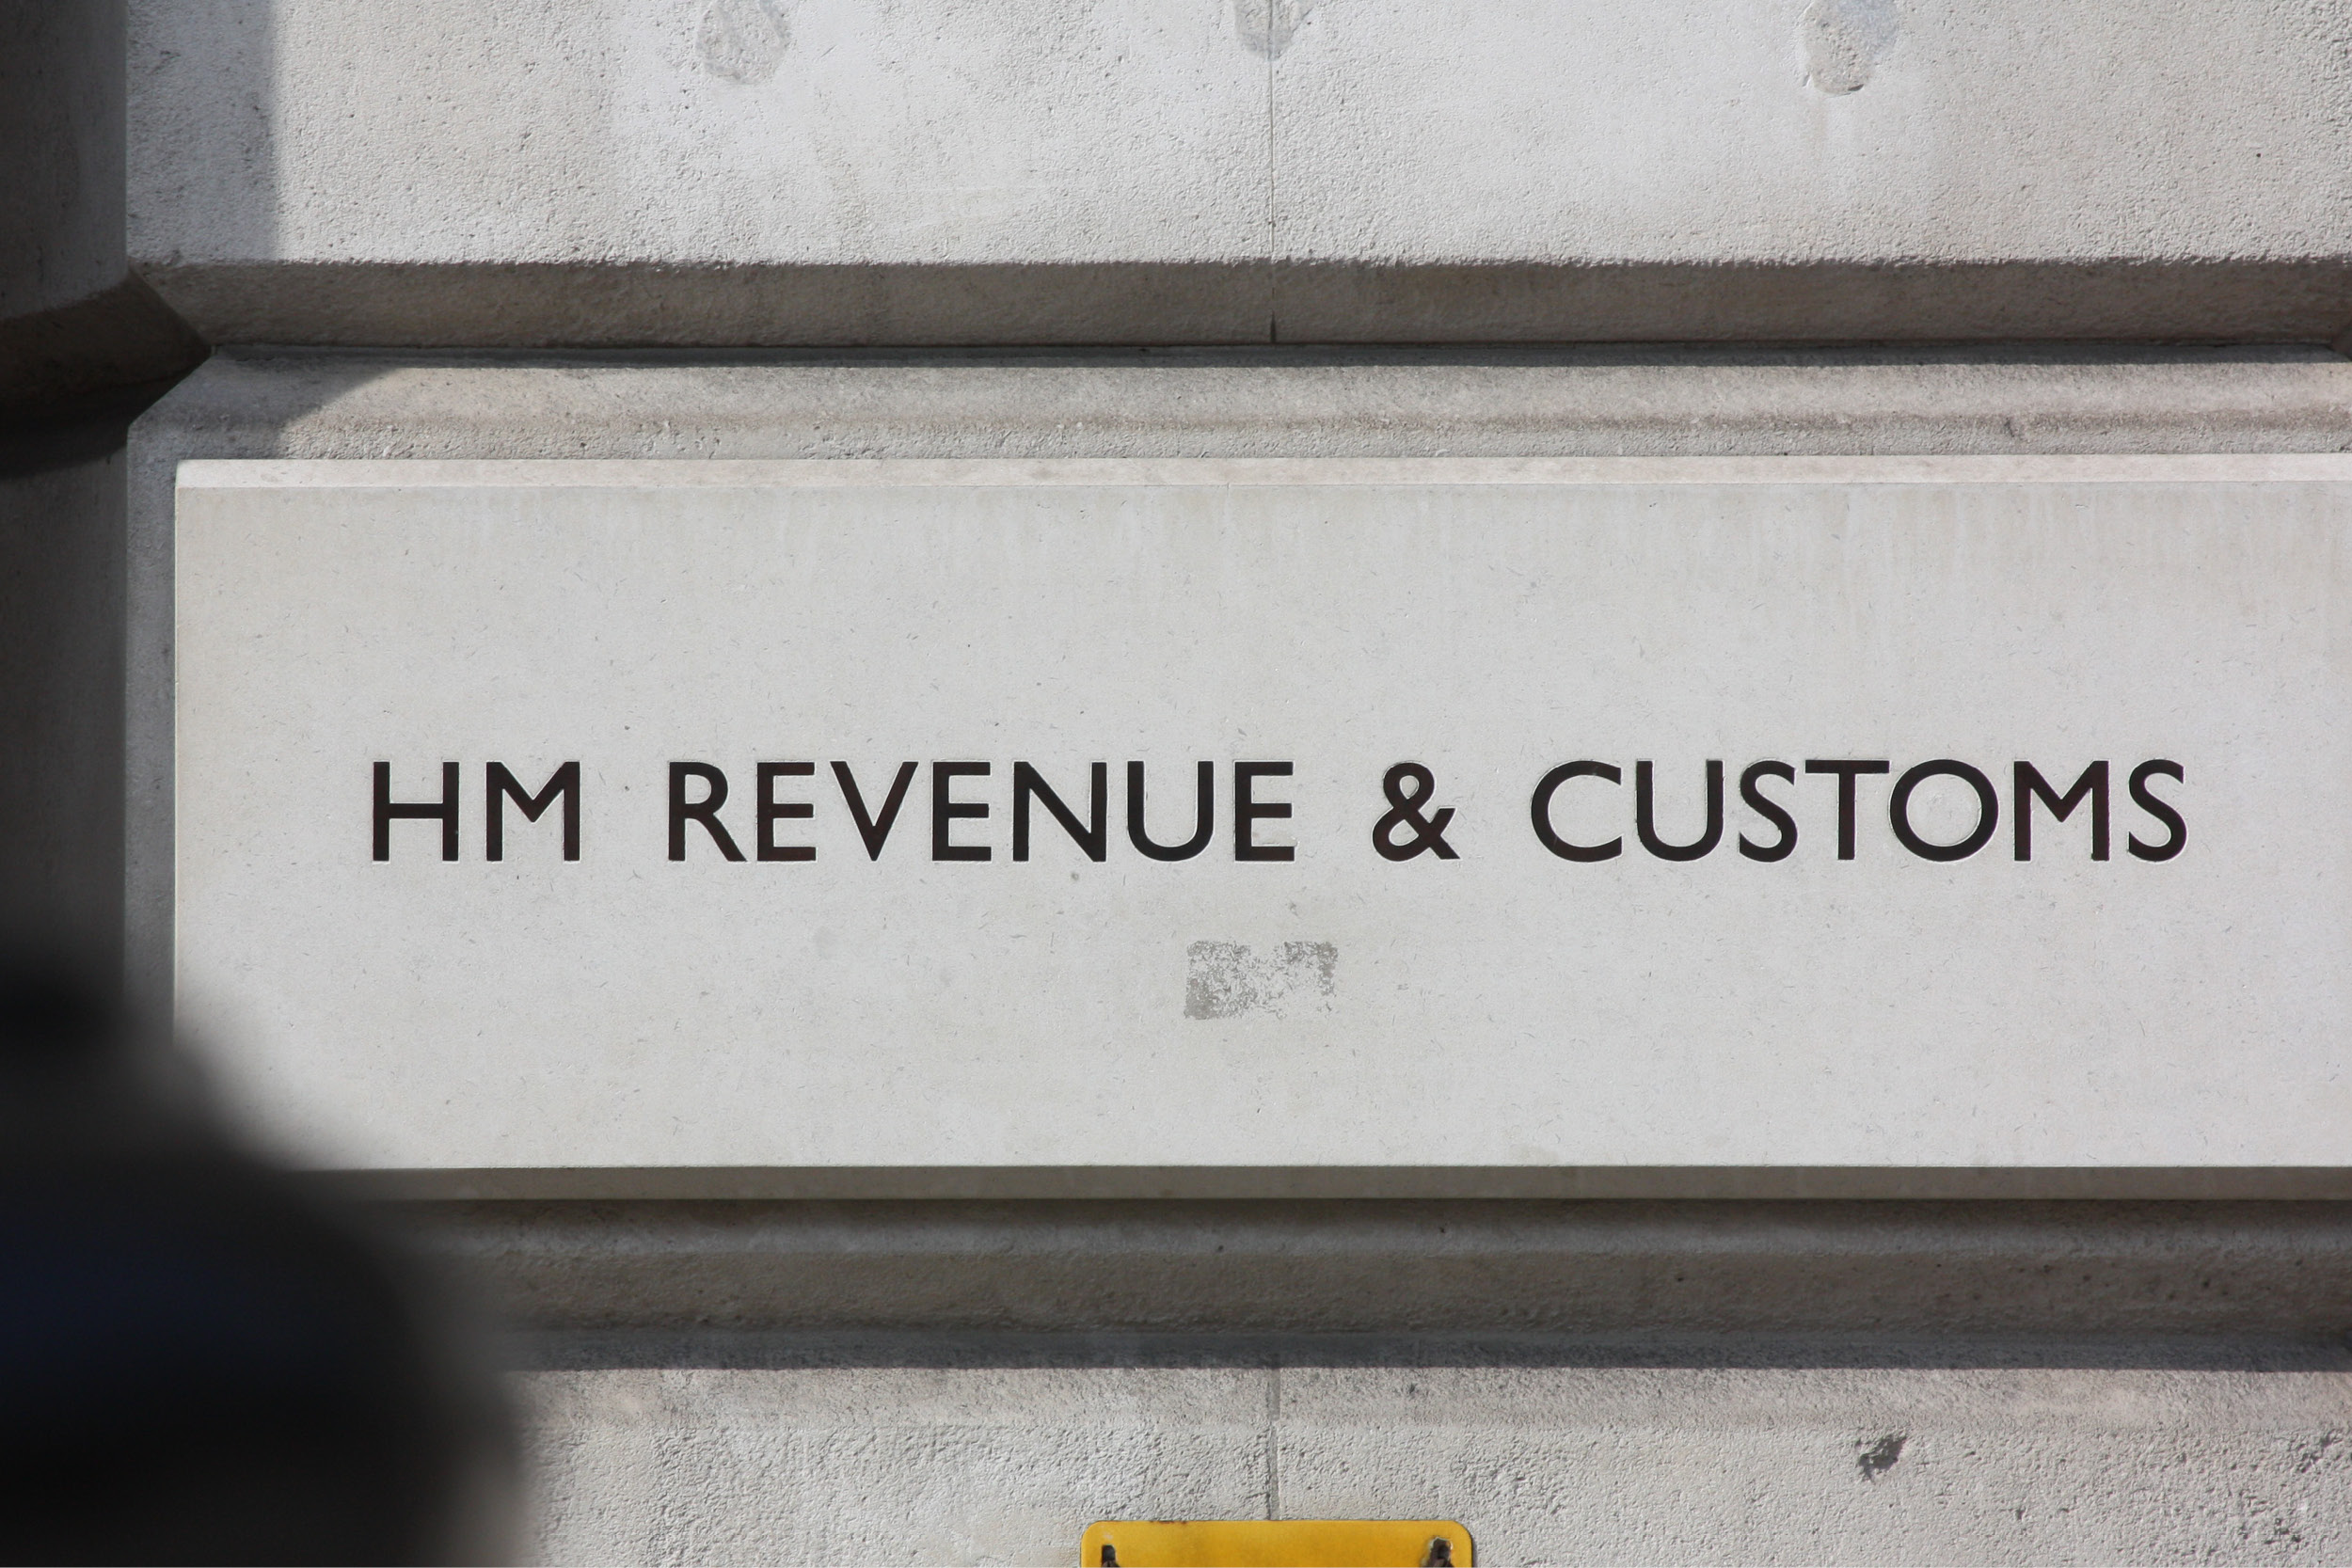 HM Revenue & Customs office